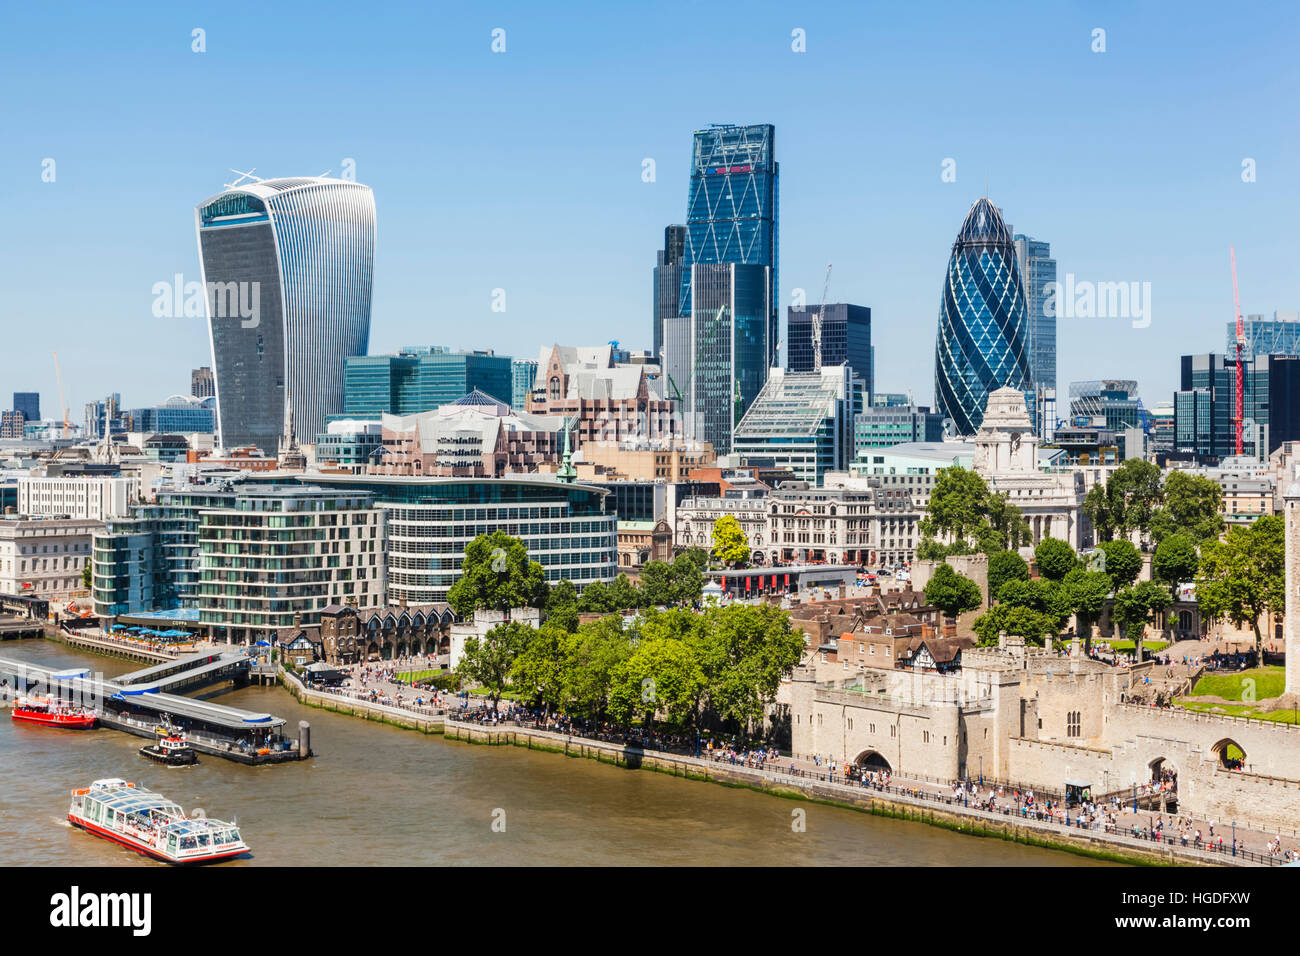 England, London, City Skyline and Thames River from Tower Bridge - Stock Image